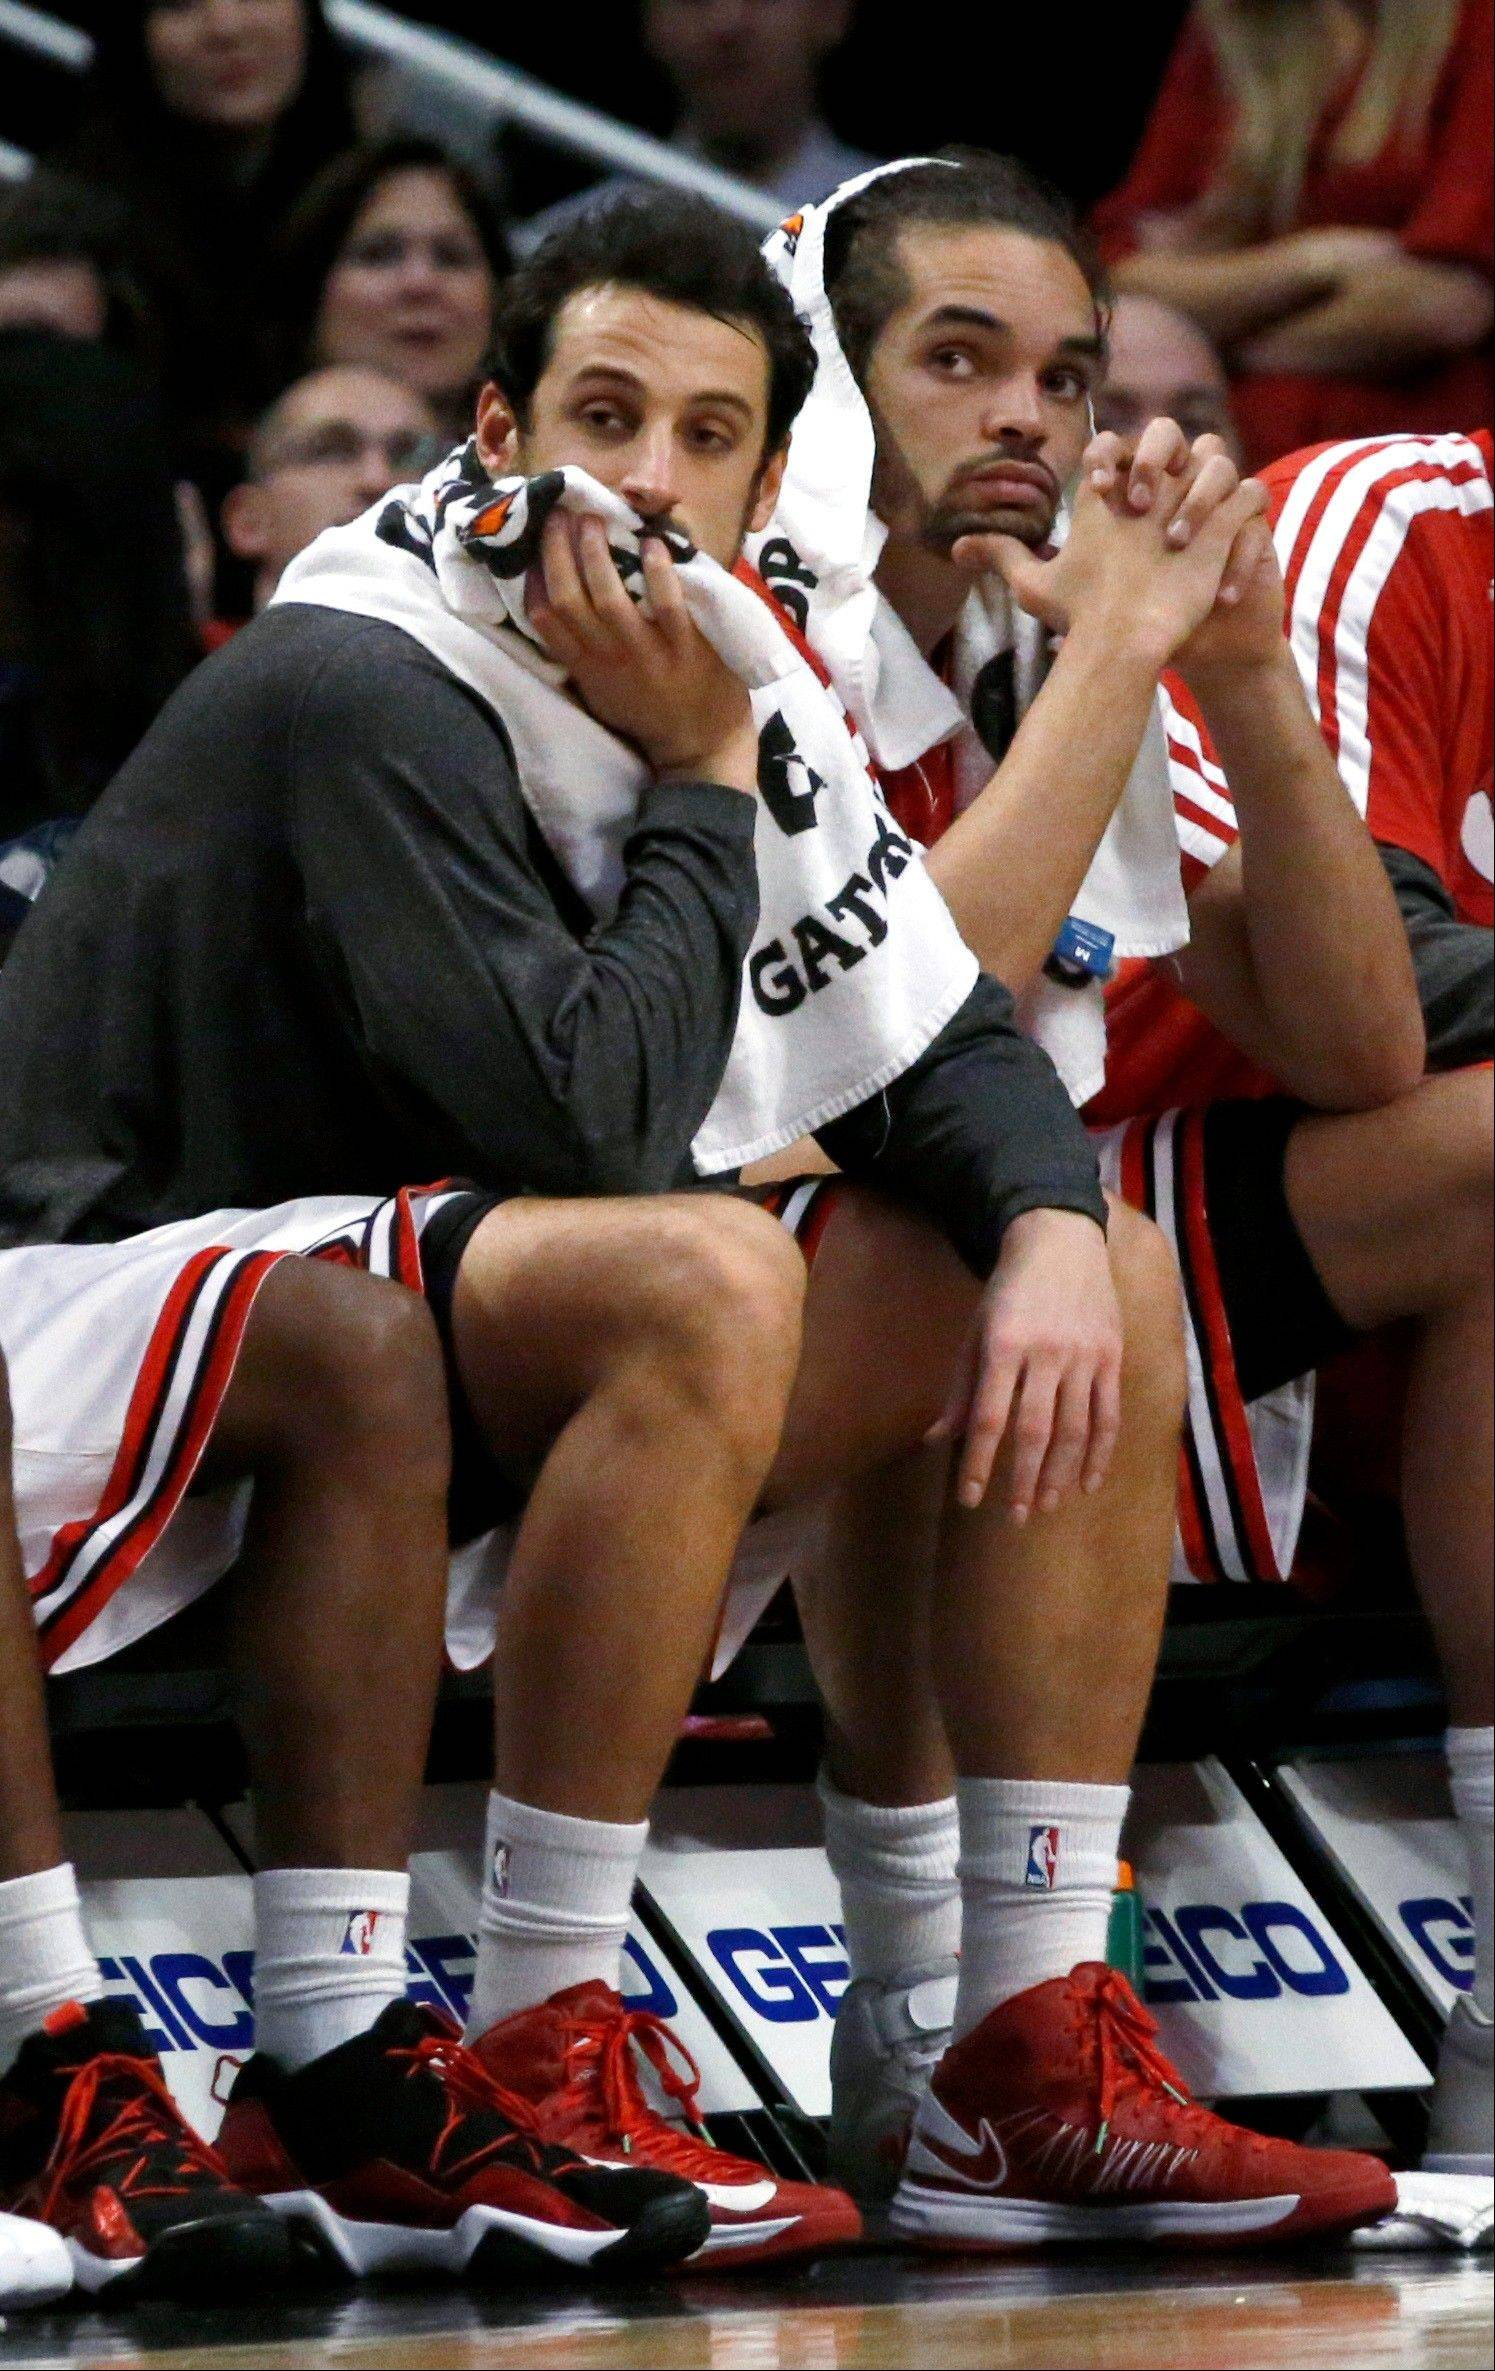 Marco Belinelli, left, and Joakim Noah sit on the bench during the closing seconds of the Bulls' 91-81 loss to Charlotte on Monday at the United Center.